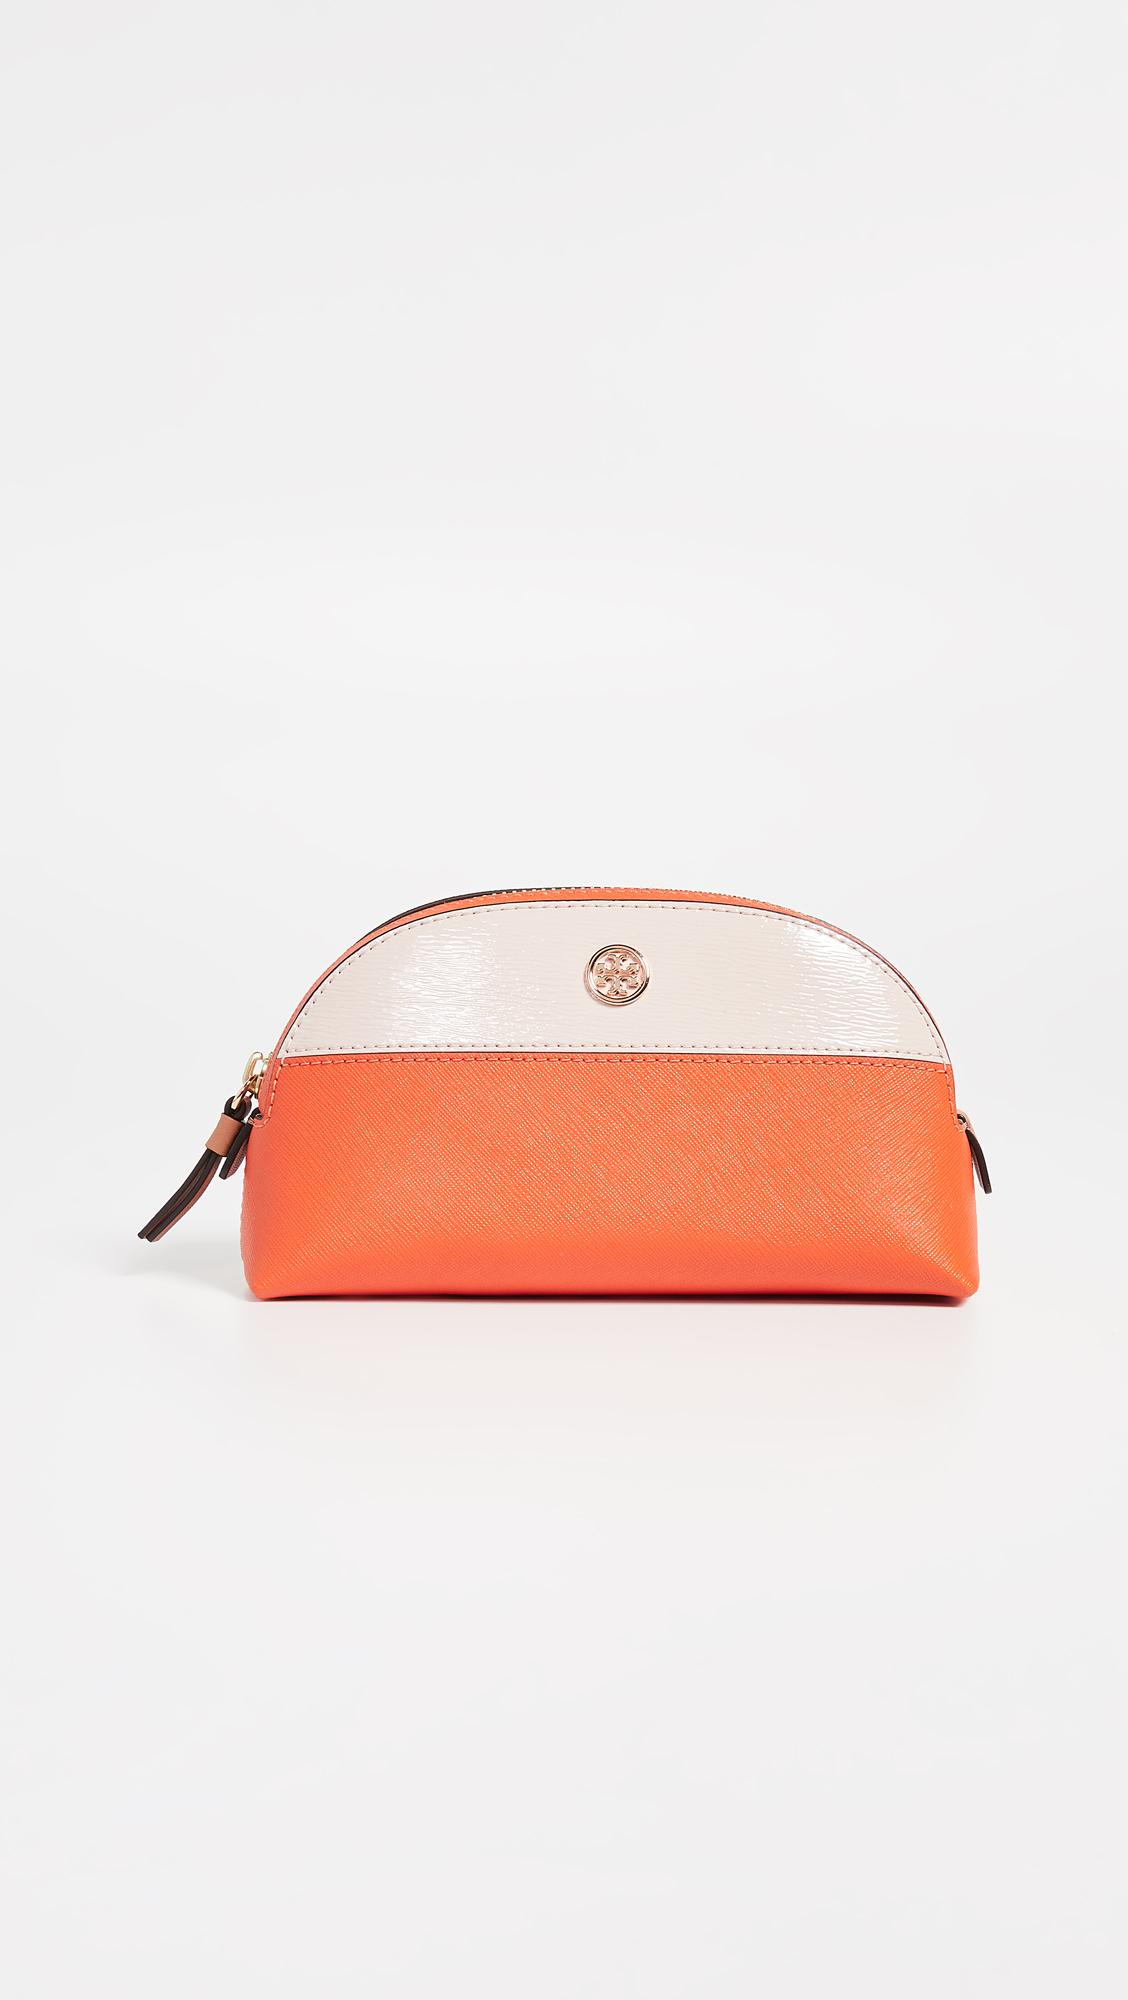 Lyst - Tory Burch Robinson Colorblock Small Makeup Bag in Orange 92169cdc4a071